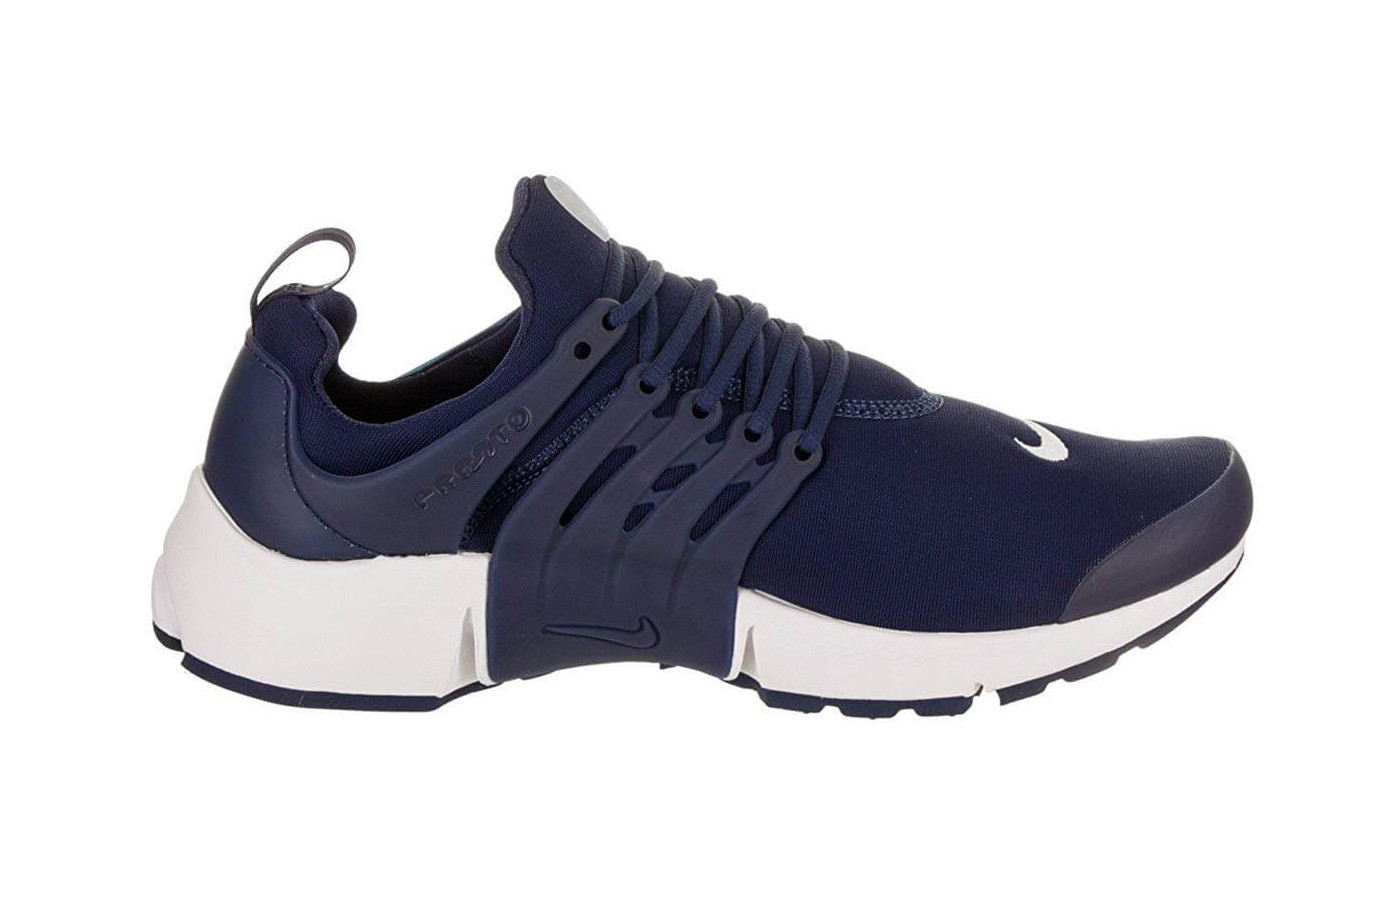 60b427b3406e Nike Air Presto Essential - To Buy or Not in Apr 2019